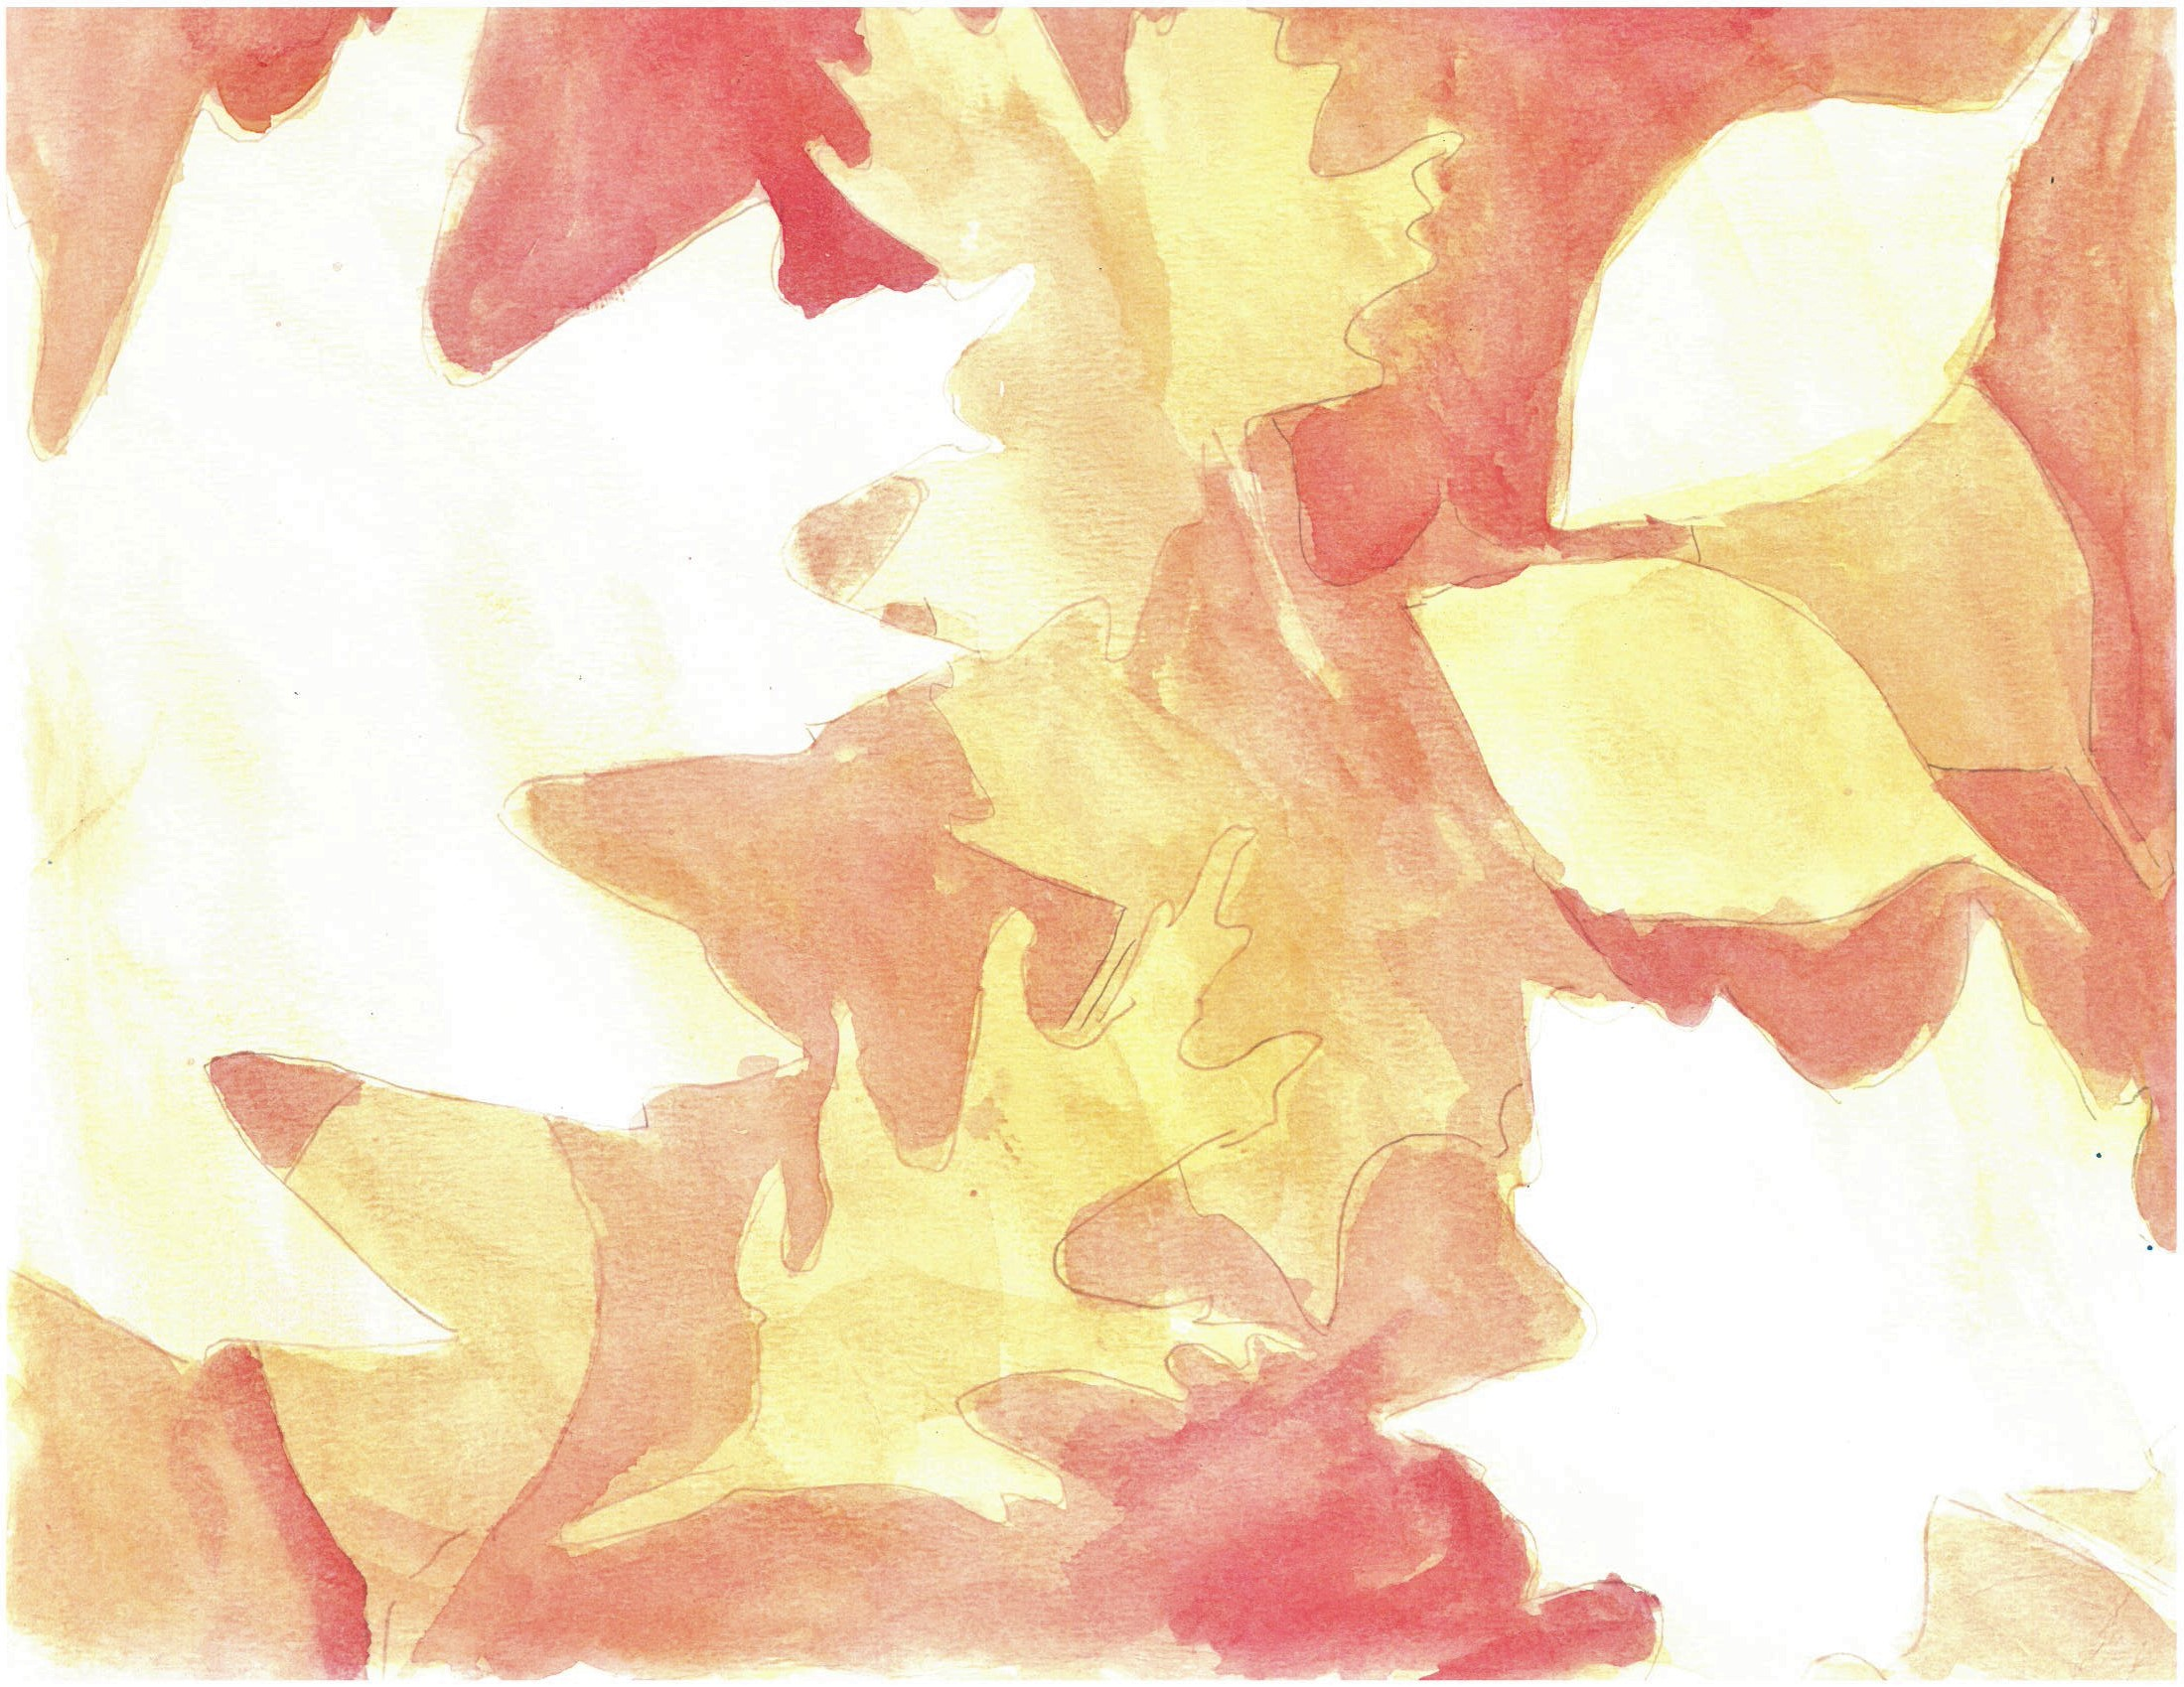 A watercolour painting of various leaf shapes as white negative shapes surrounded by washes of orange, red and yellow